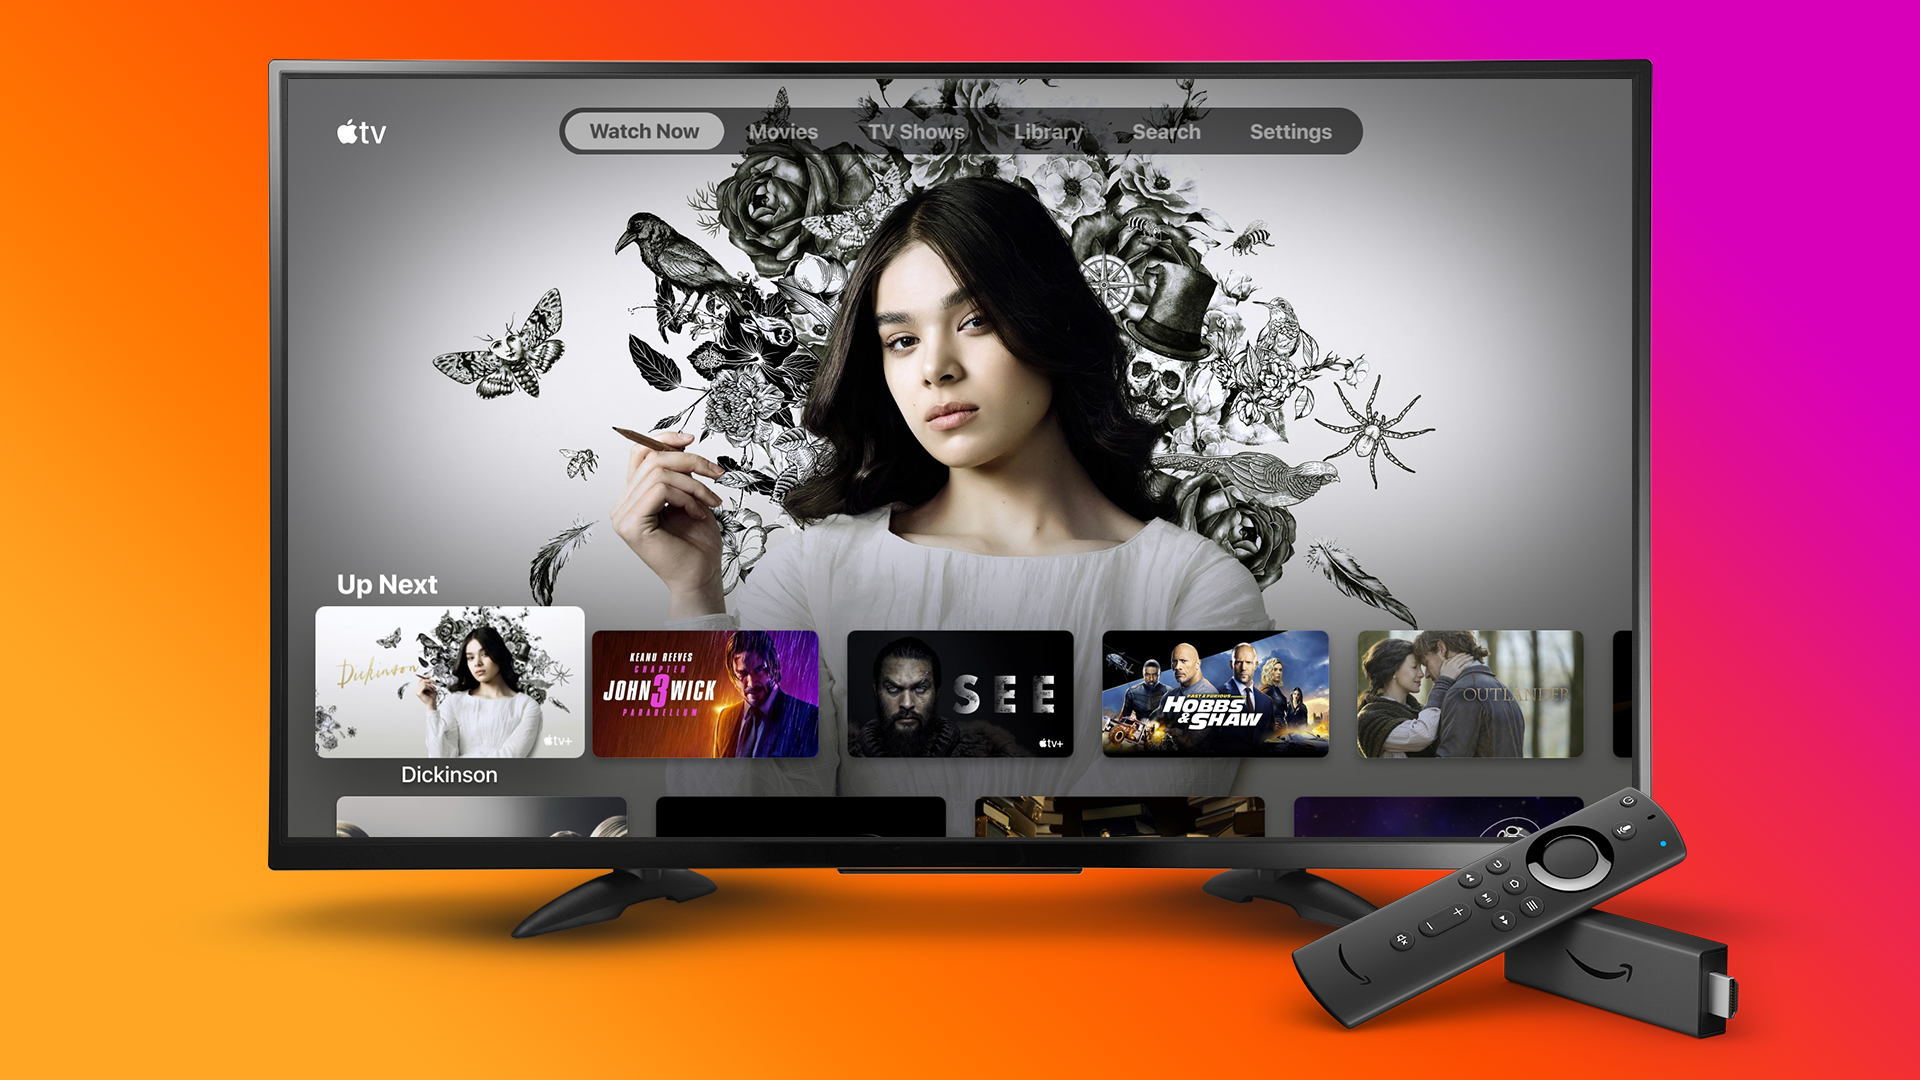 Apple TV app comes to Amazon's Fire TV Stick and other devices